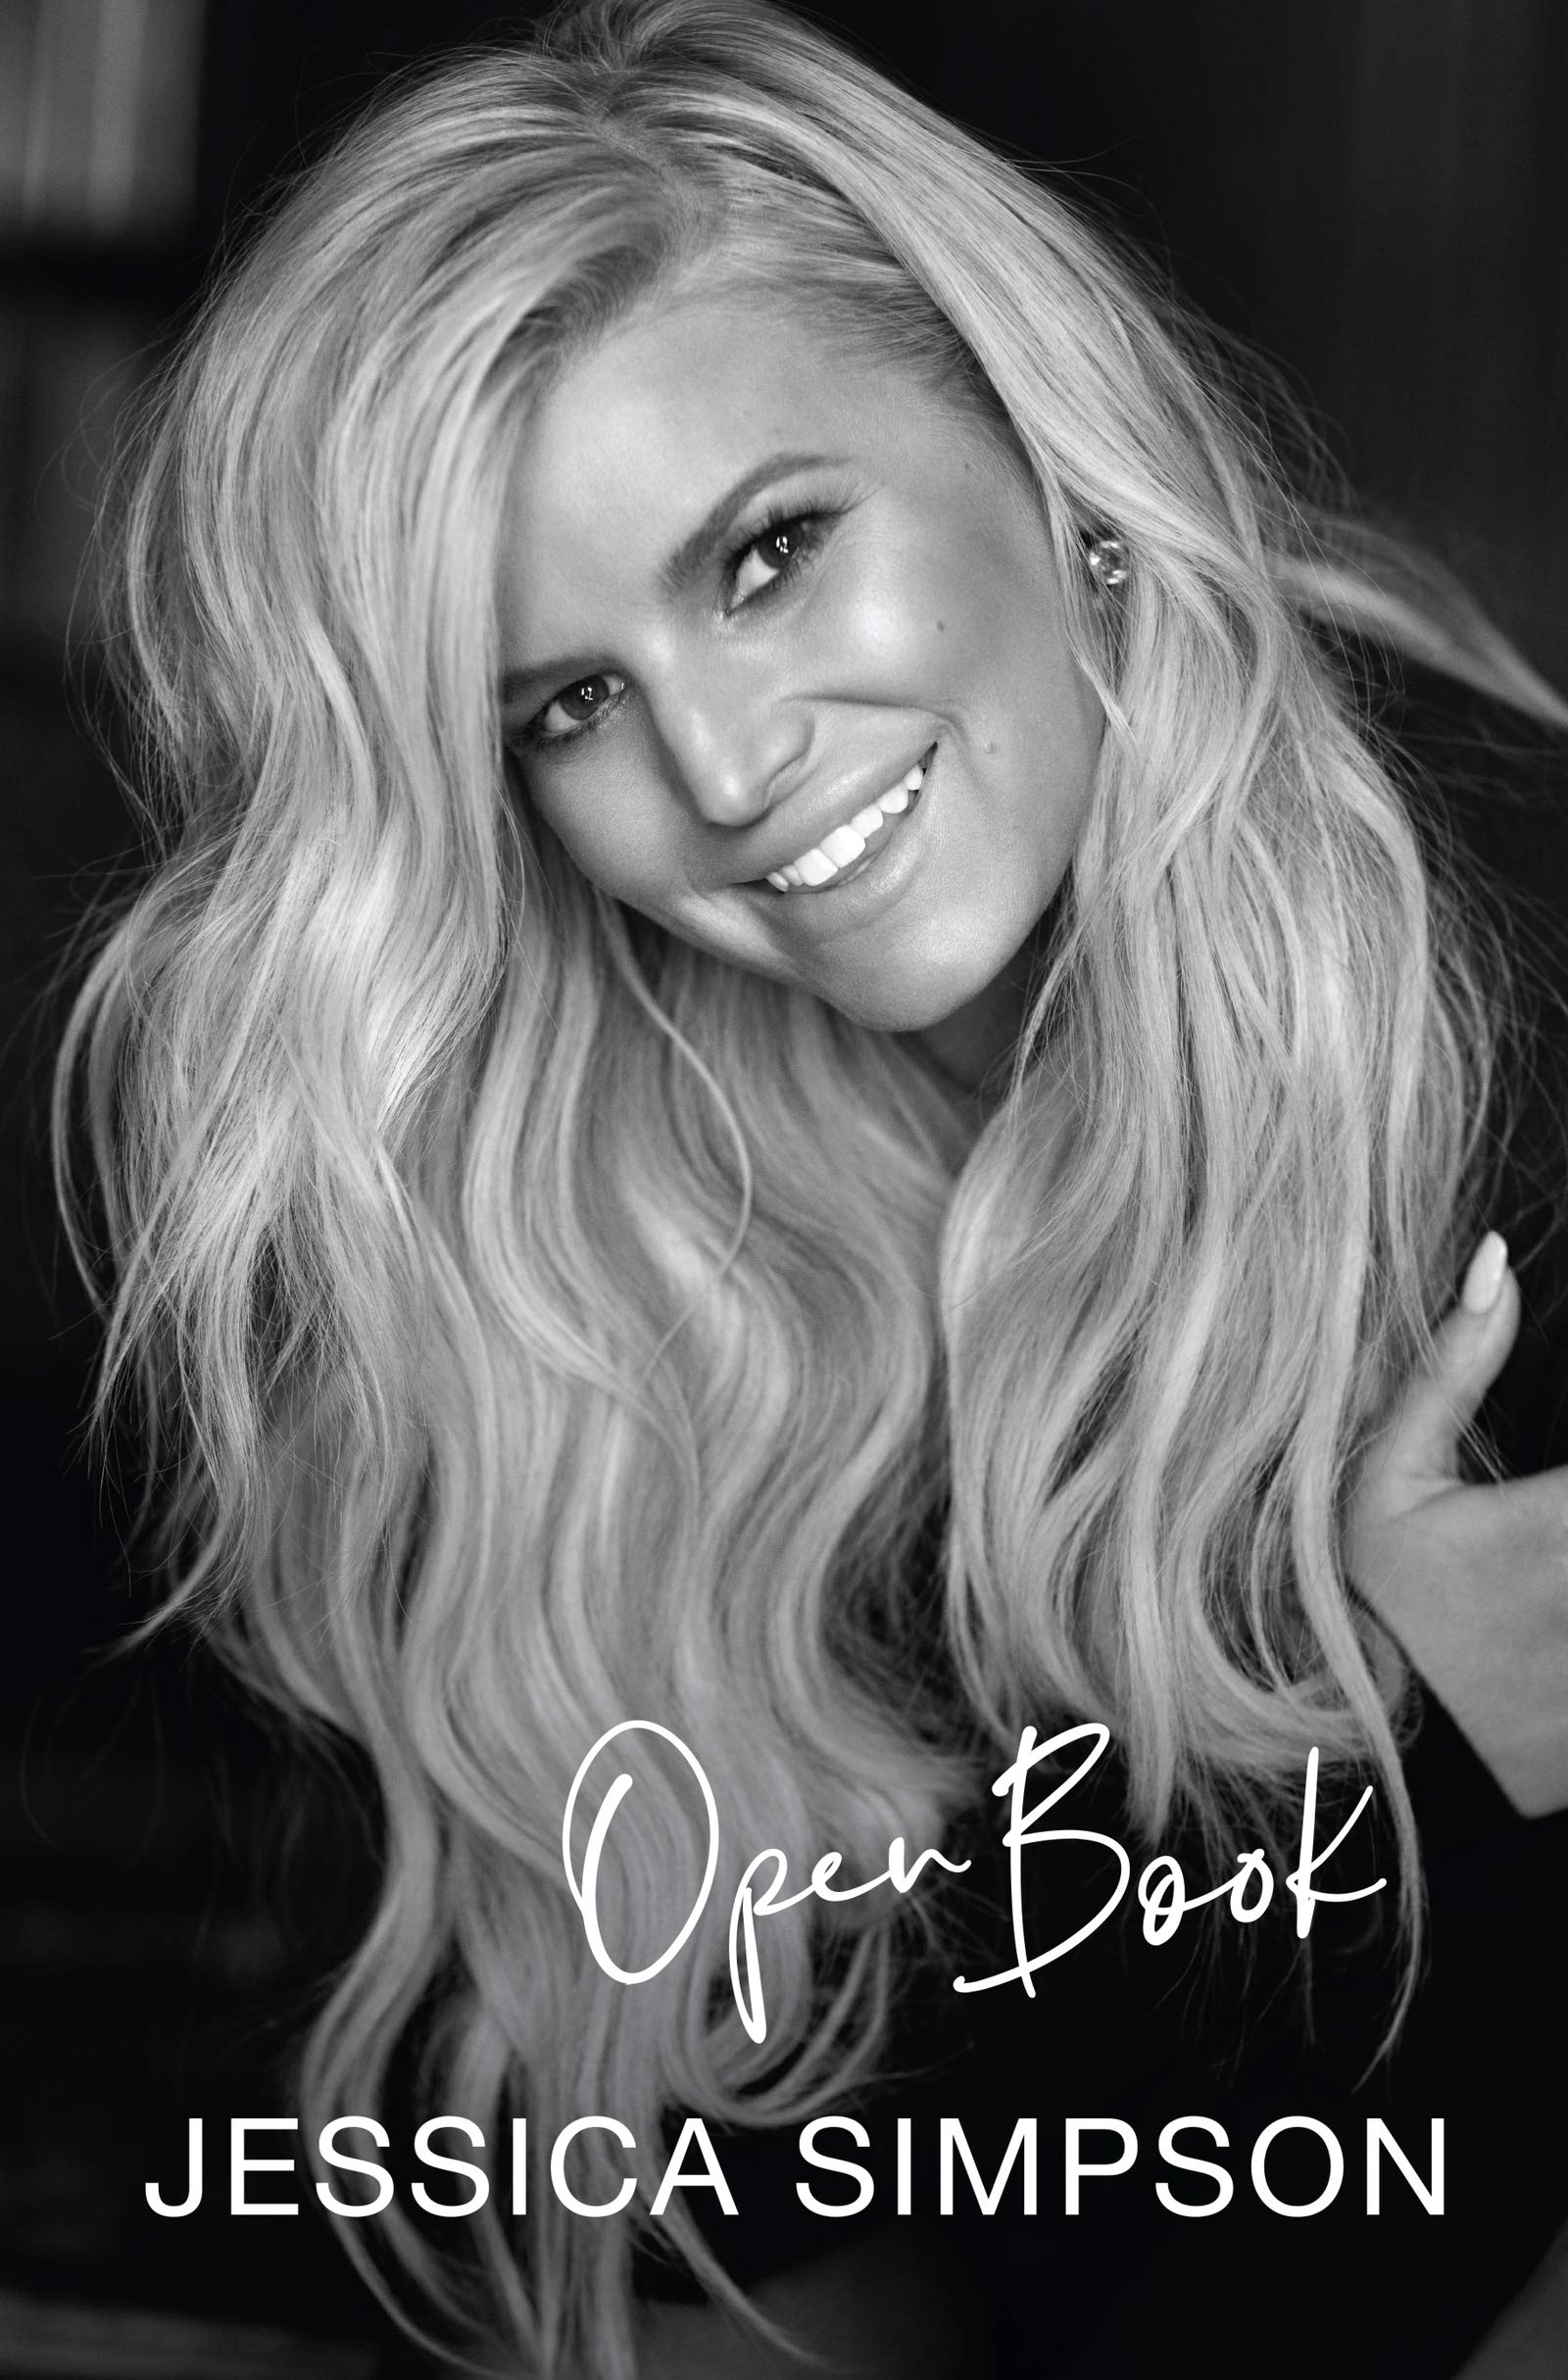 Image result for jessica simpson open book""